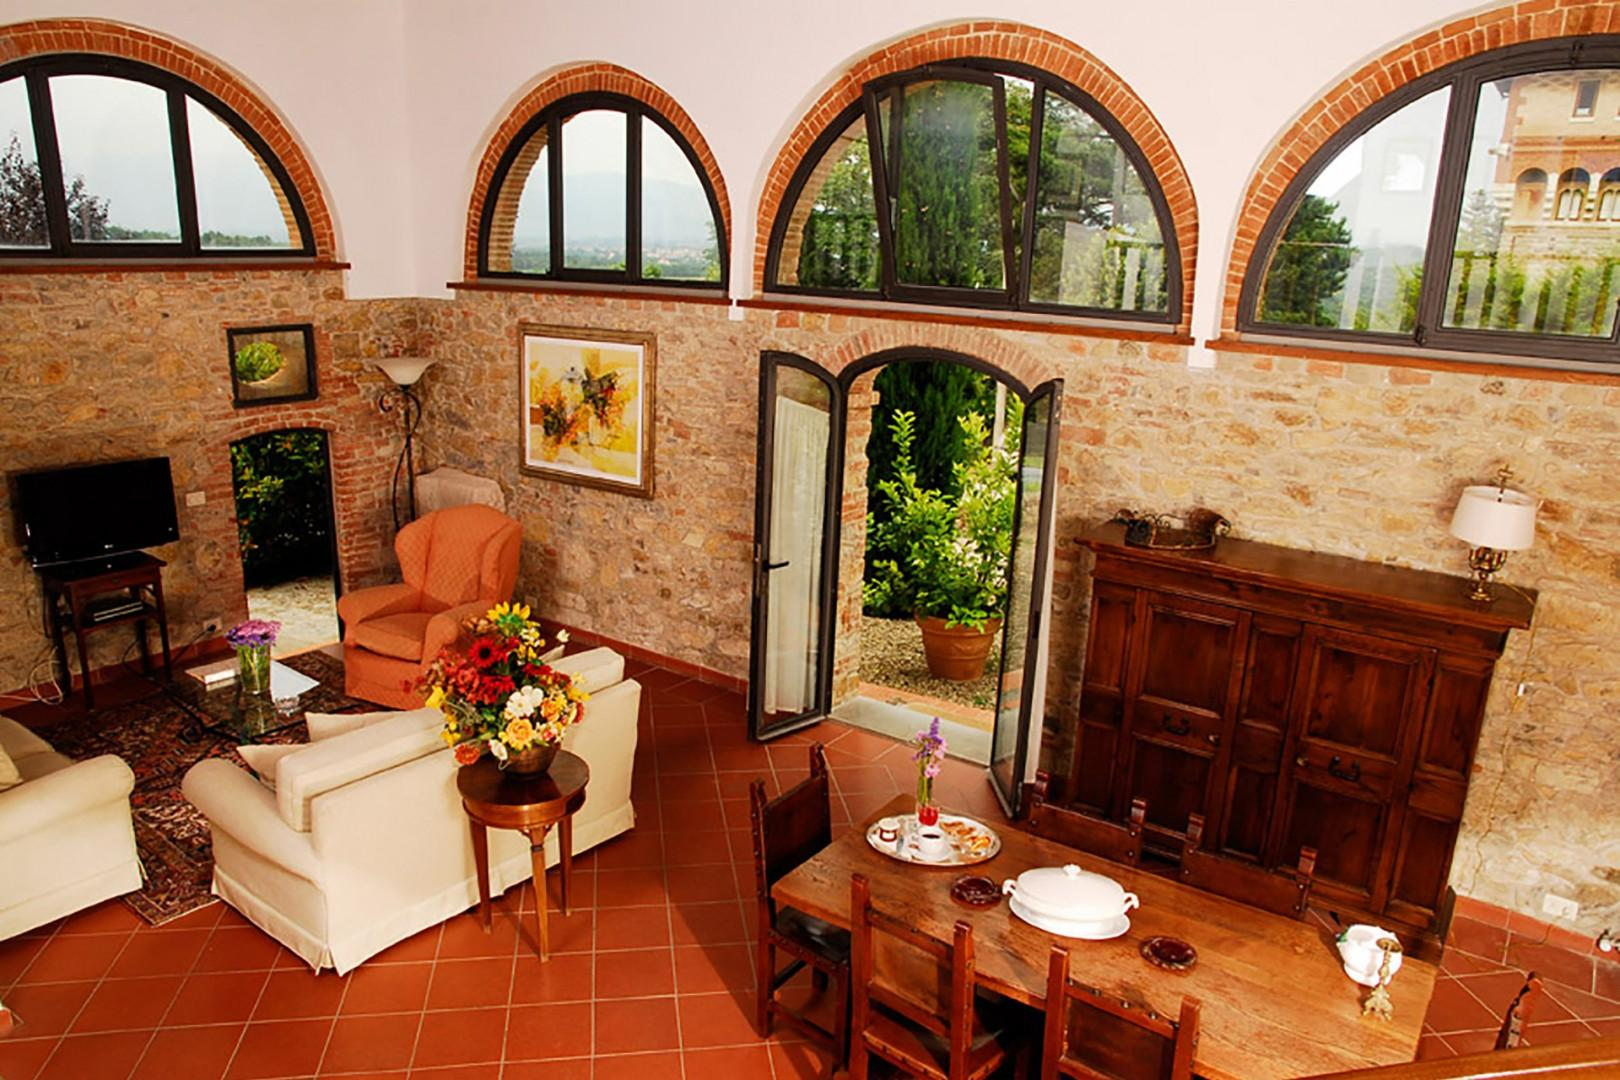 The high-ceilinged living room is filled with light from the arched windows on three sides.